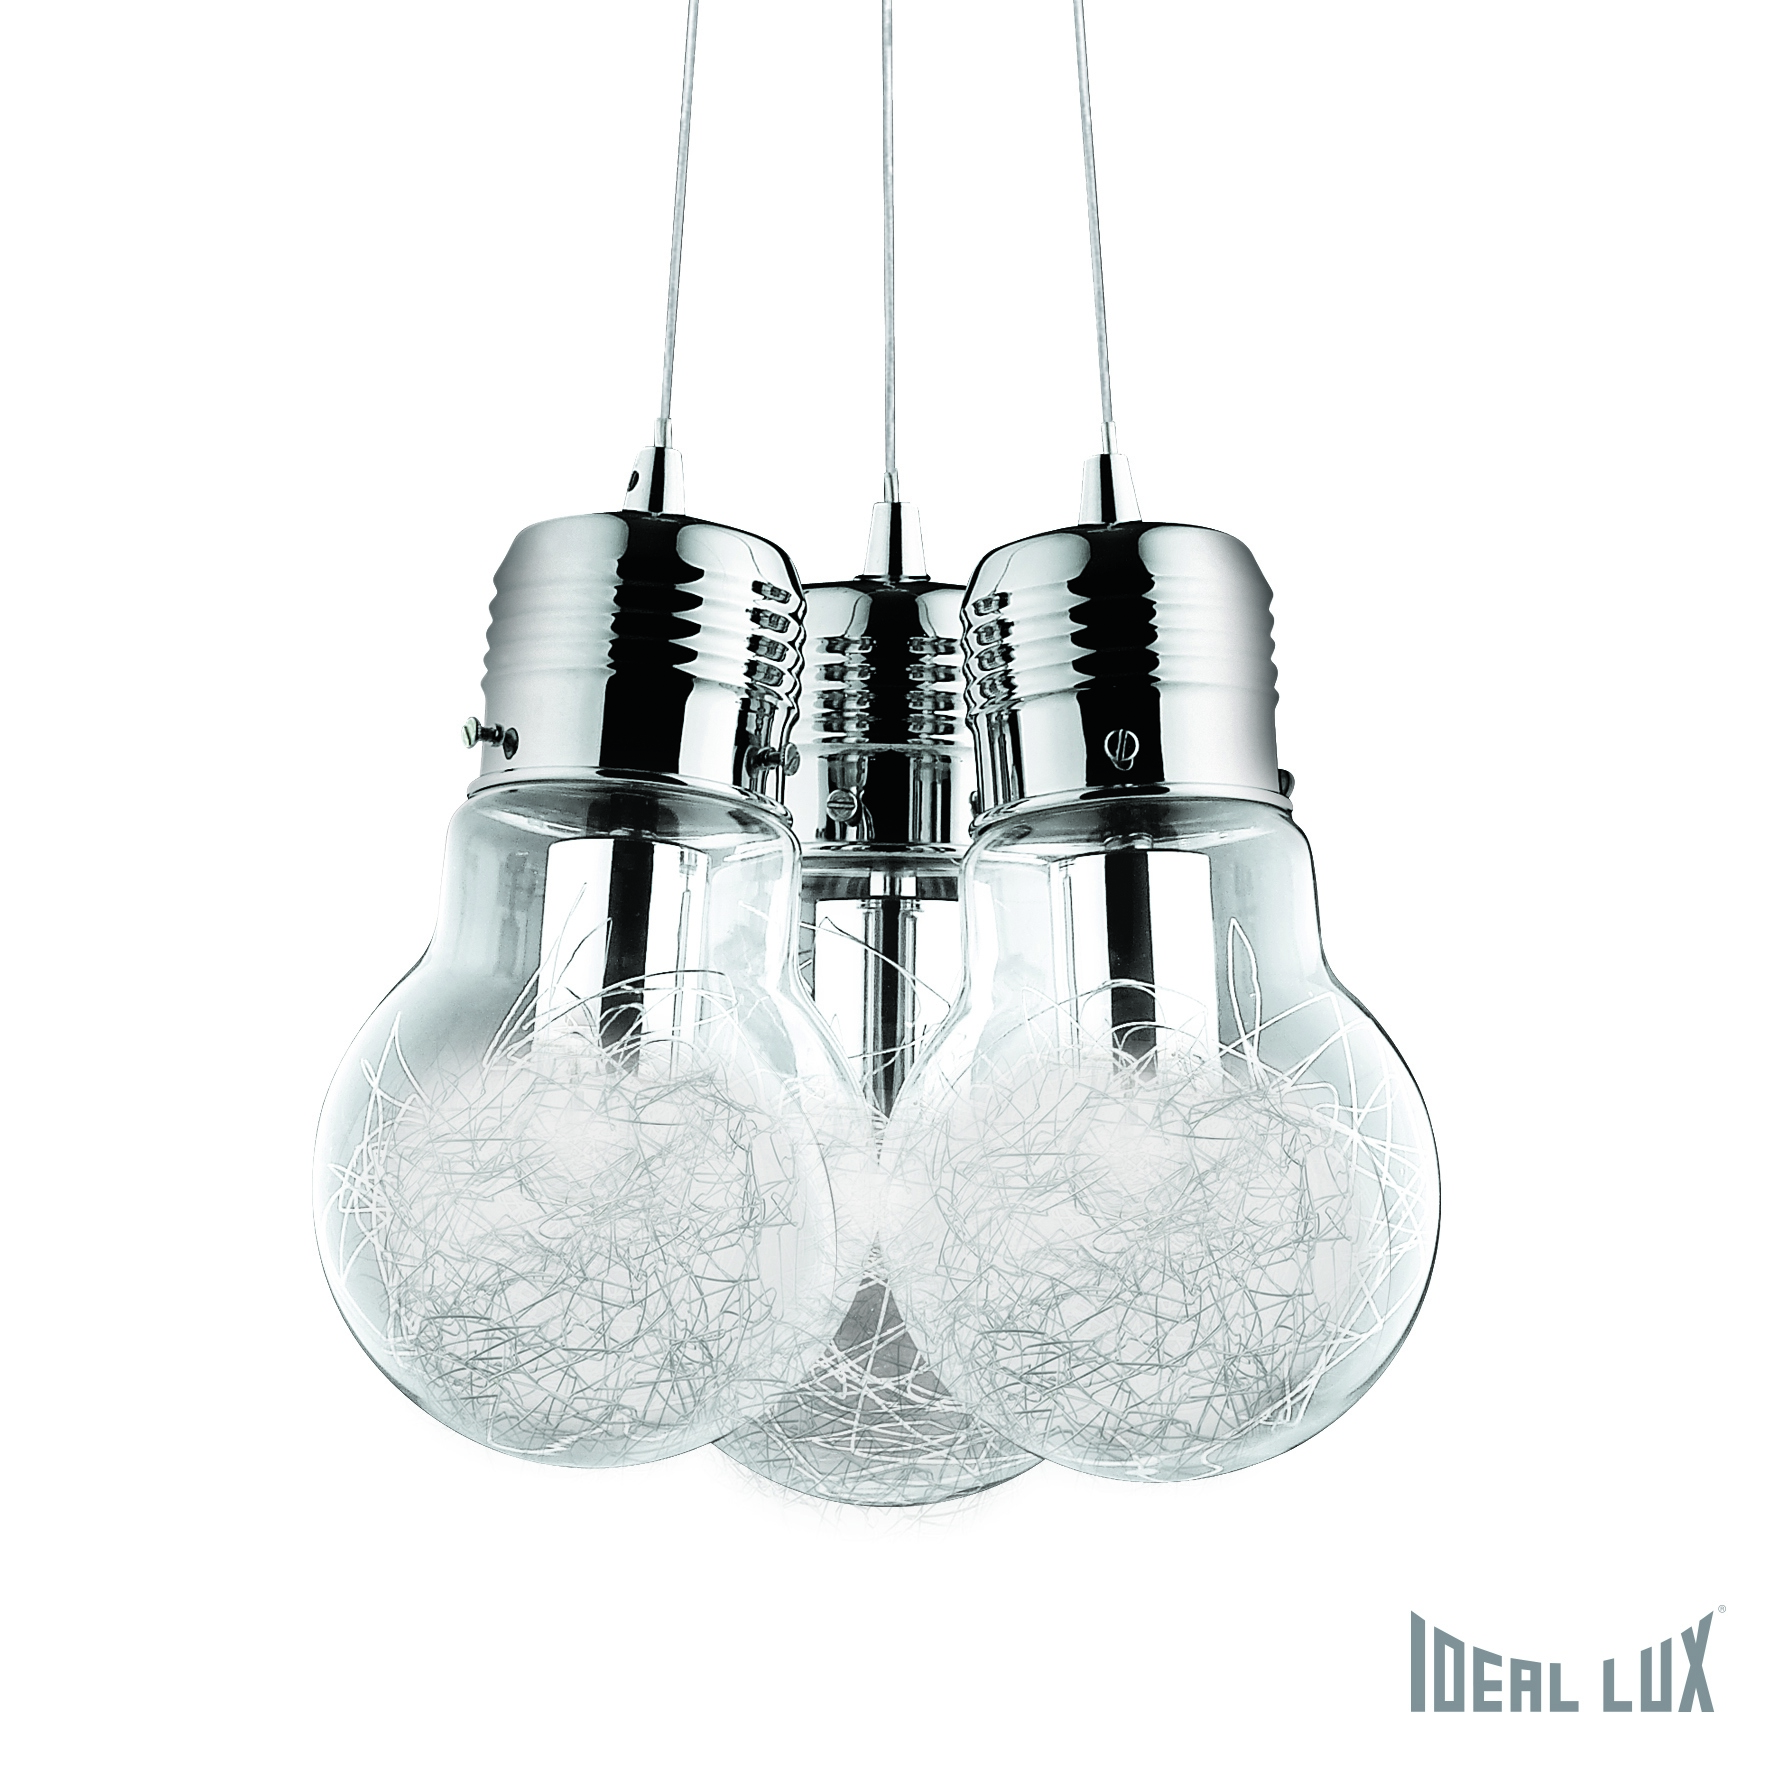 Светильник подвесной Ideal Lux Luce LUCE MAX SP3 ideal lux люстра ideal lux le roy sp3